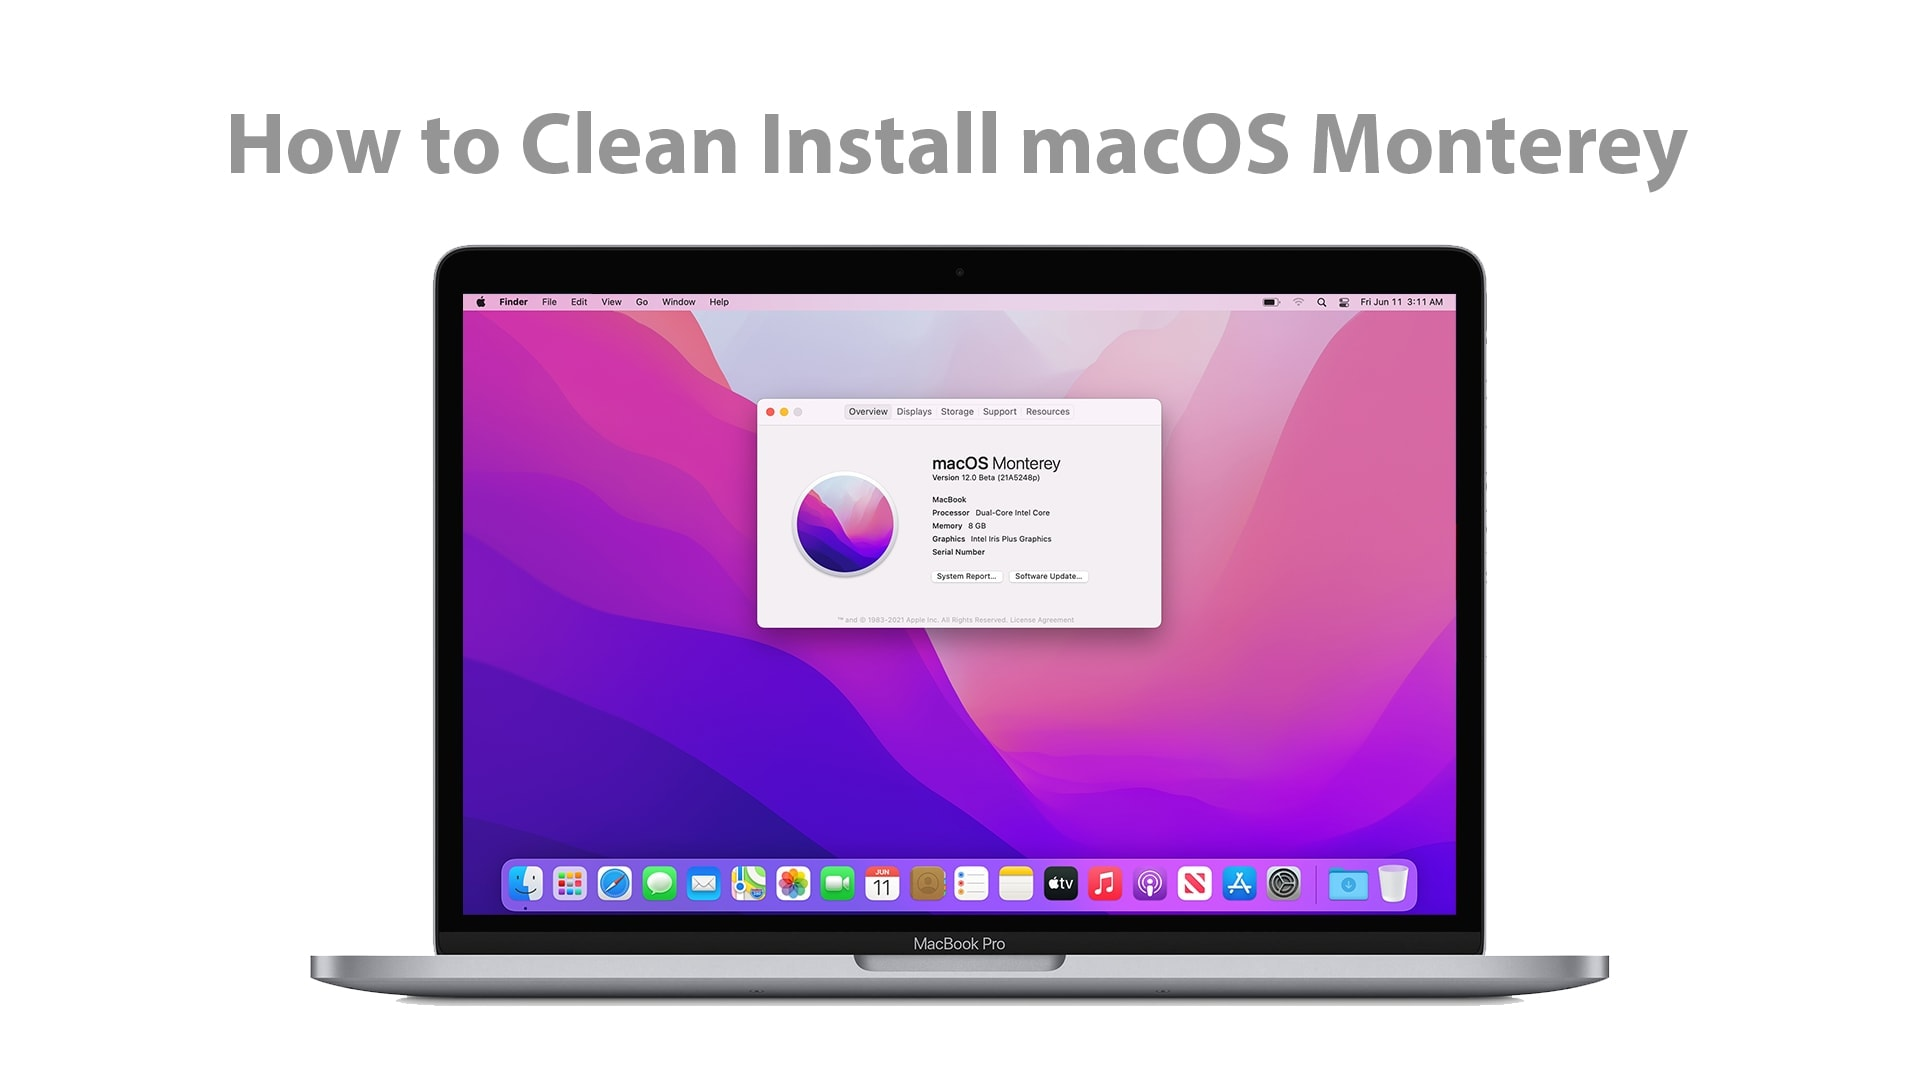 How to Clean Install macOS Monterey